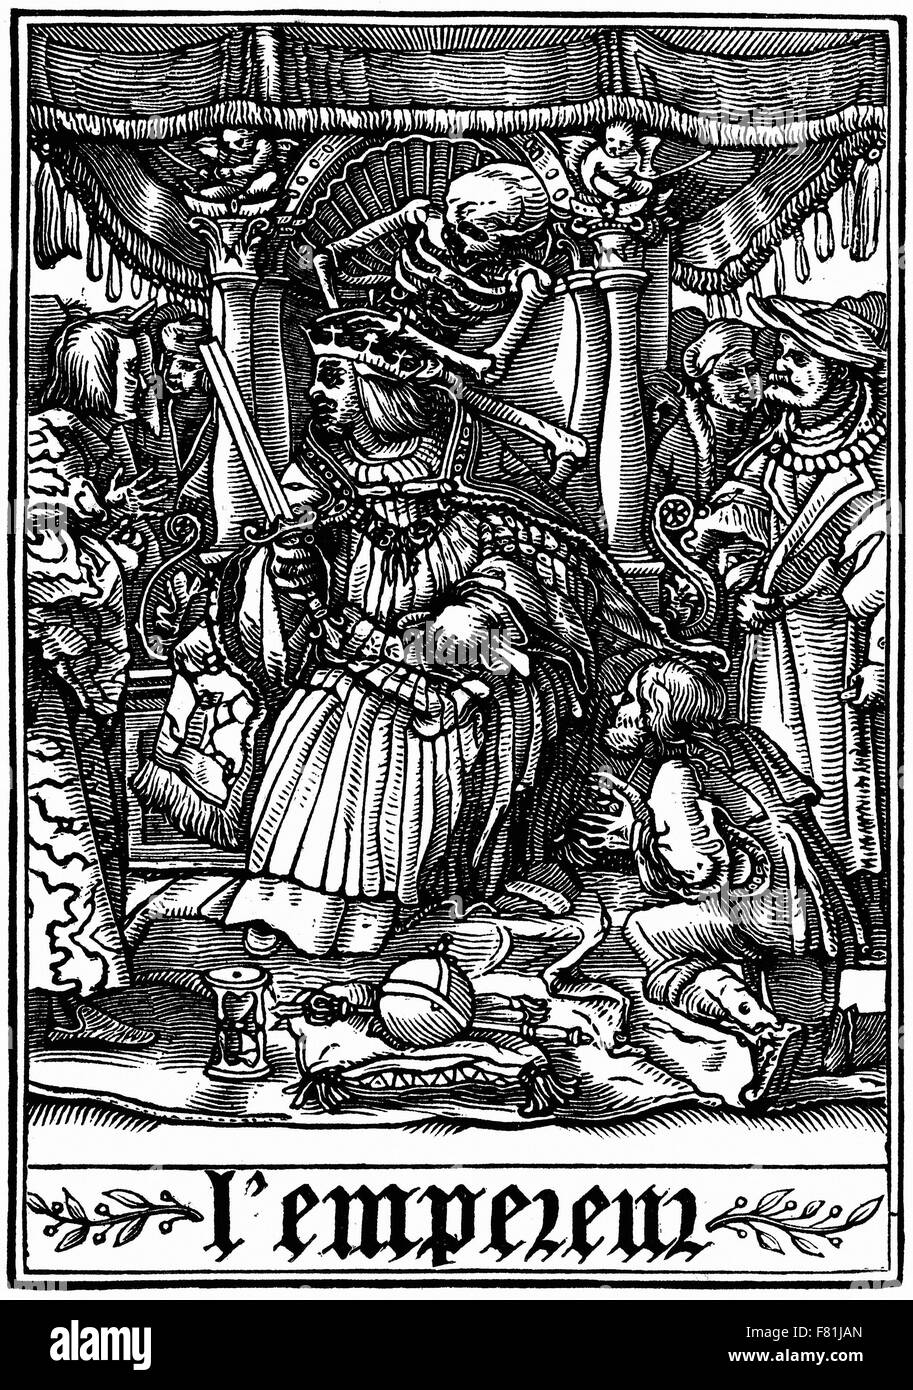 Hans Holbein the Younger - The Emperor visited by Death - Les Simulacres de la Mort (Dance of Death) - Wood engraving - Stock Image